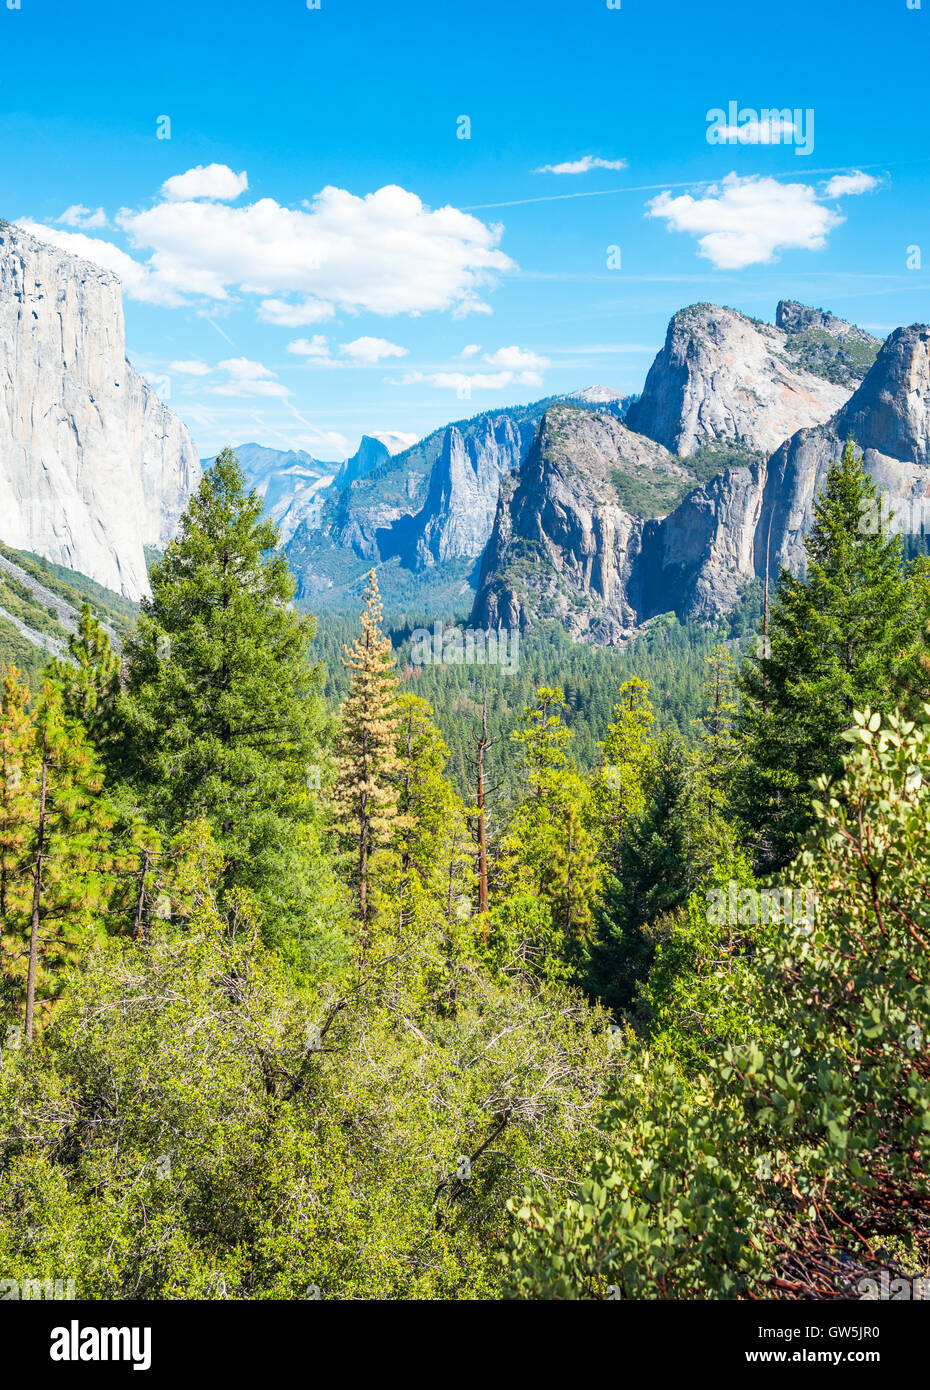 Yosemite National Park, California, panoramic view of the valley with the El Capitan and the Cathedral Spires mountains Stock Photo